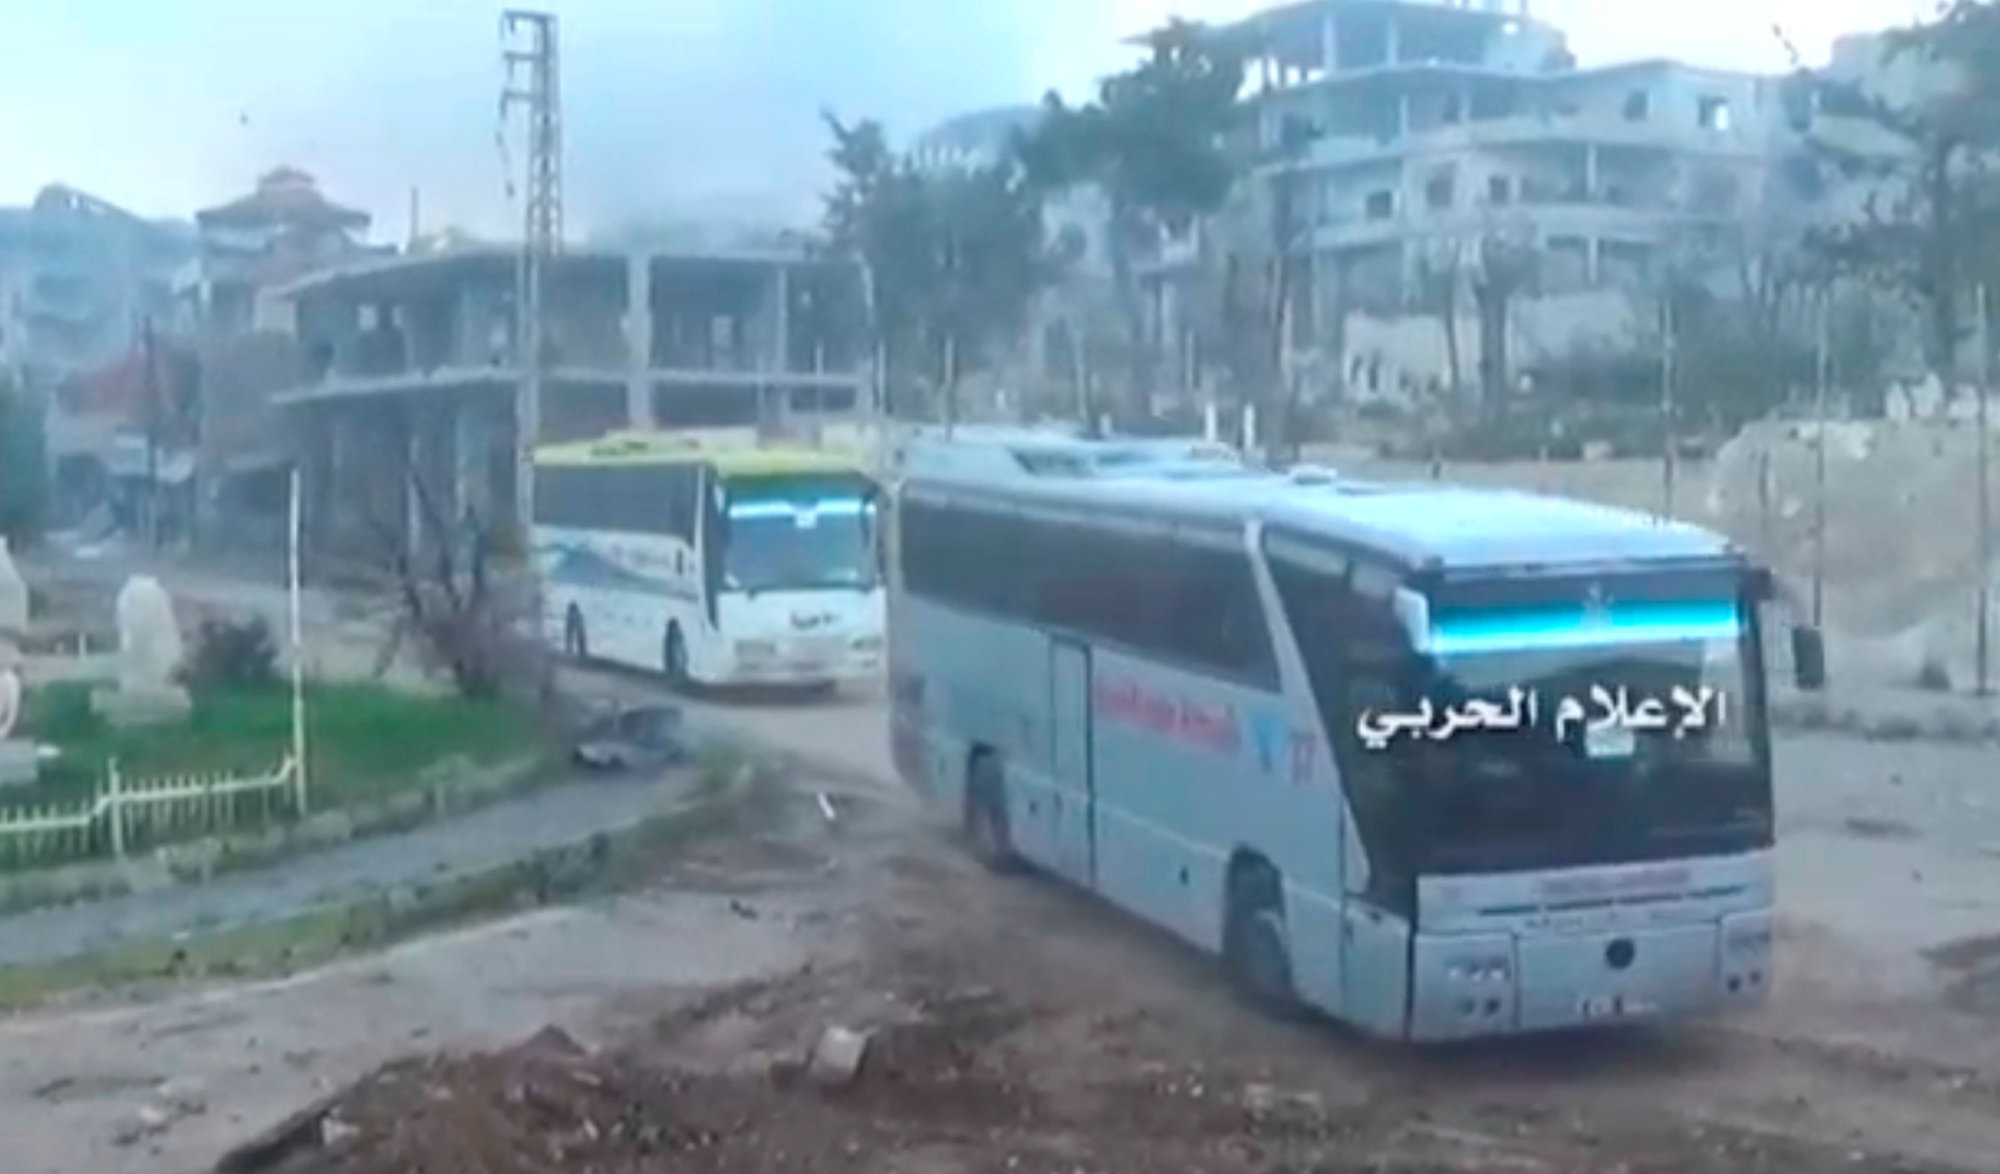 A still image taken from a video uploaded by the Syrian Army on Wednesday shows buses carrying rebel fighters and their families leaving the the town of Zabadani, near Damascus. | SYRIAN ARMY / HANDOUT / VIA REUTERS TV